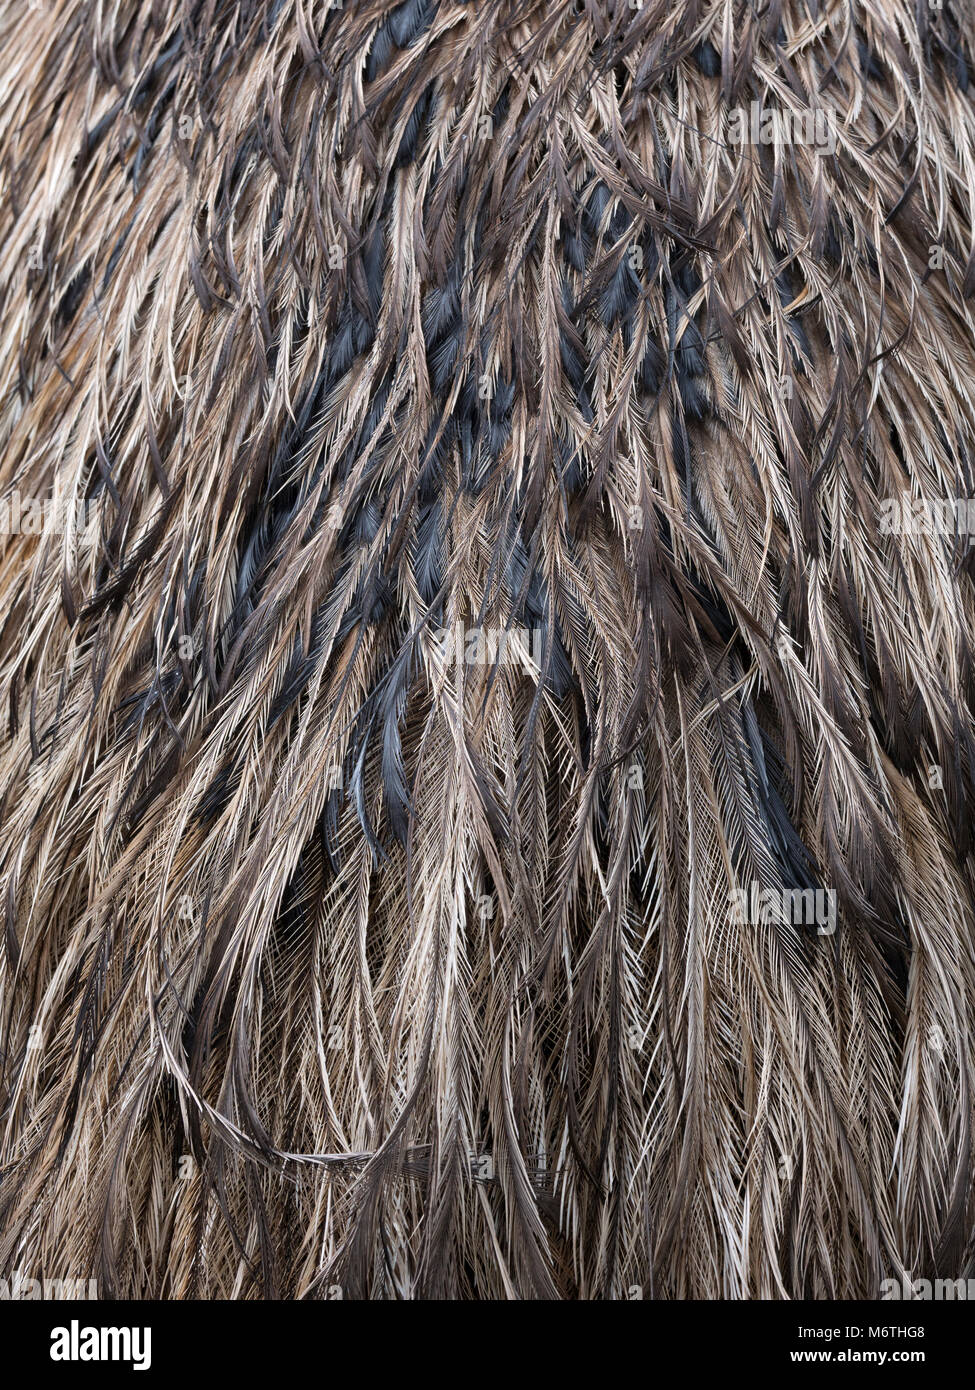 Emu Dromaius novaehollandiae showing plumage detail - Stock Image